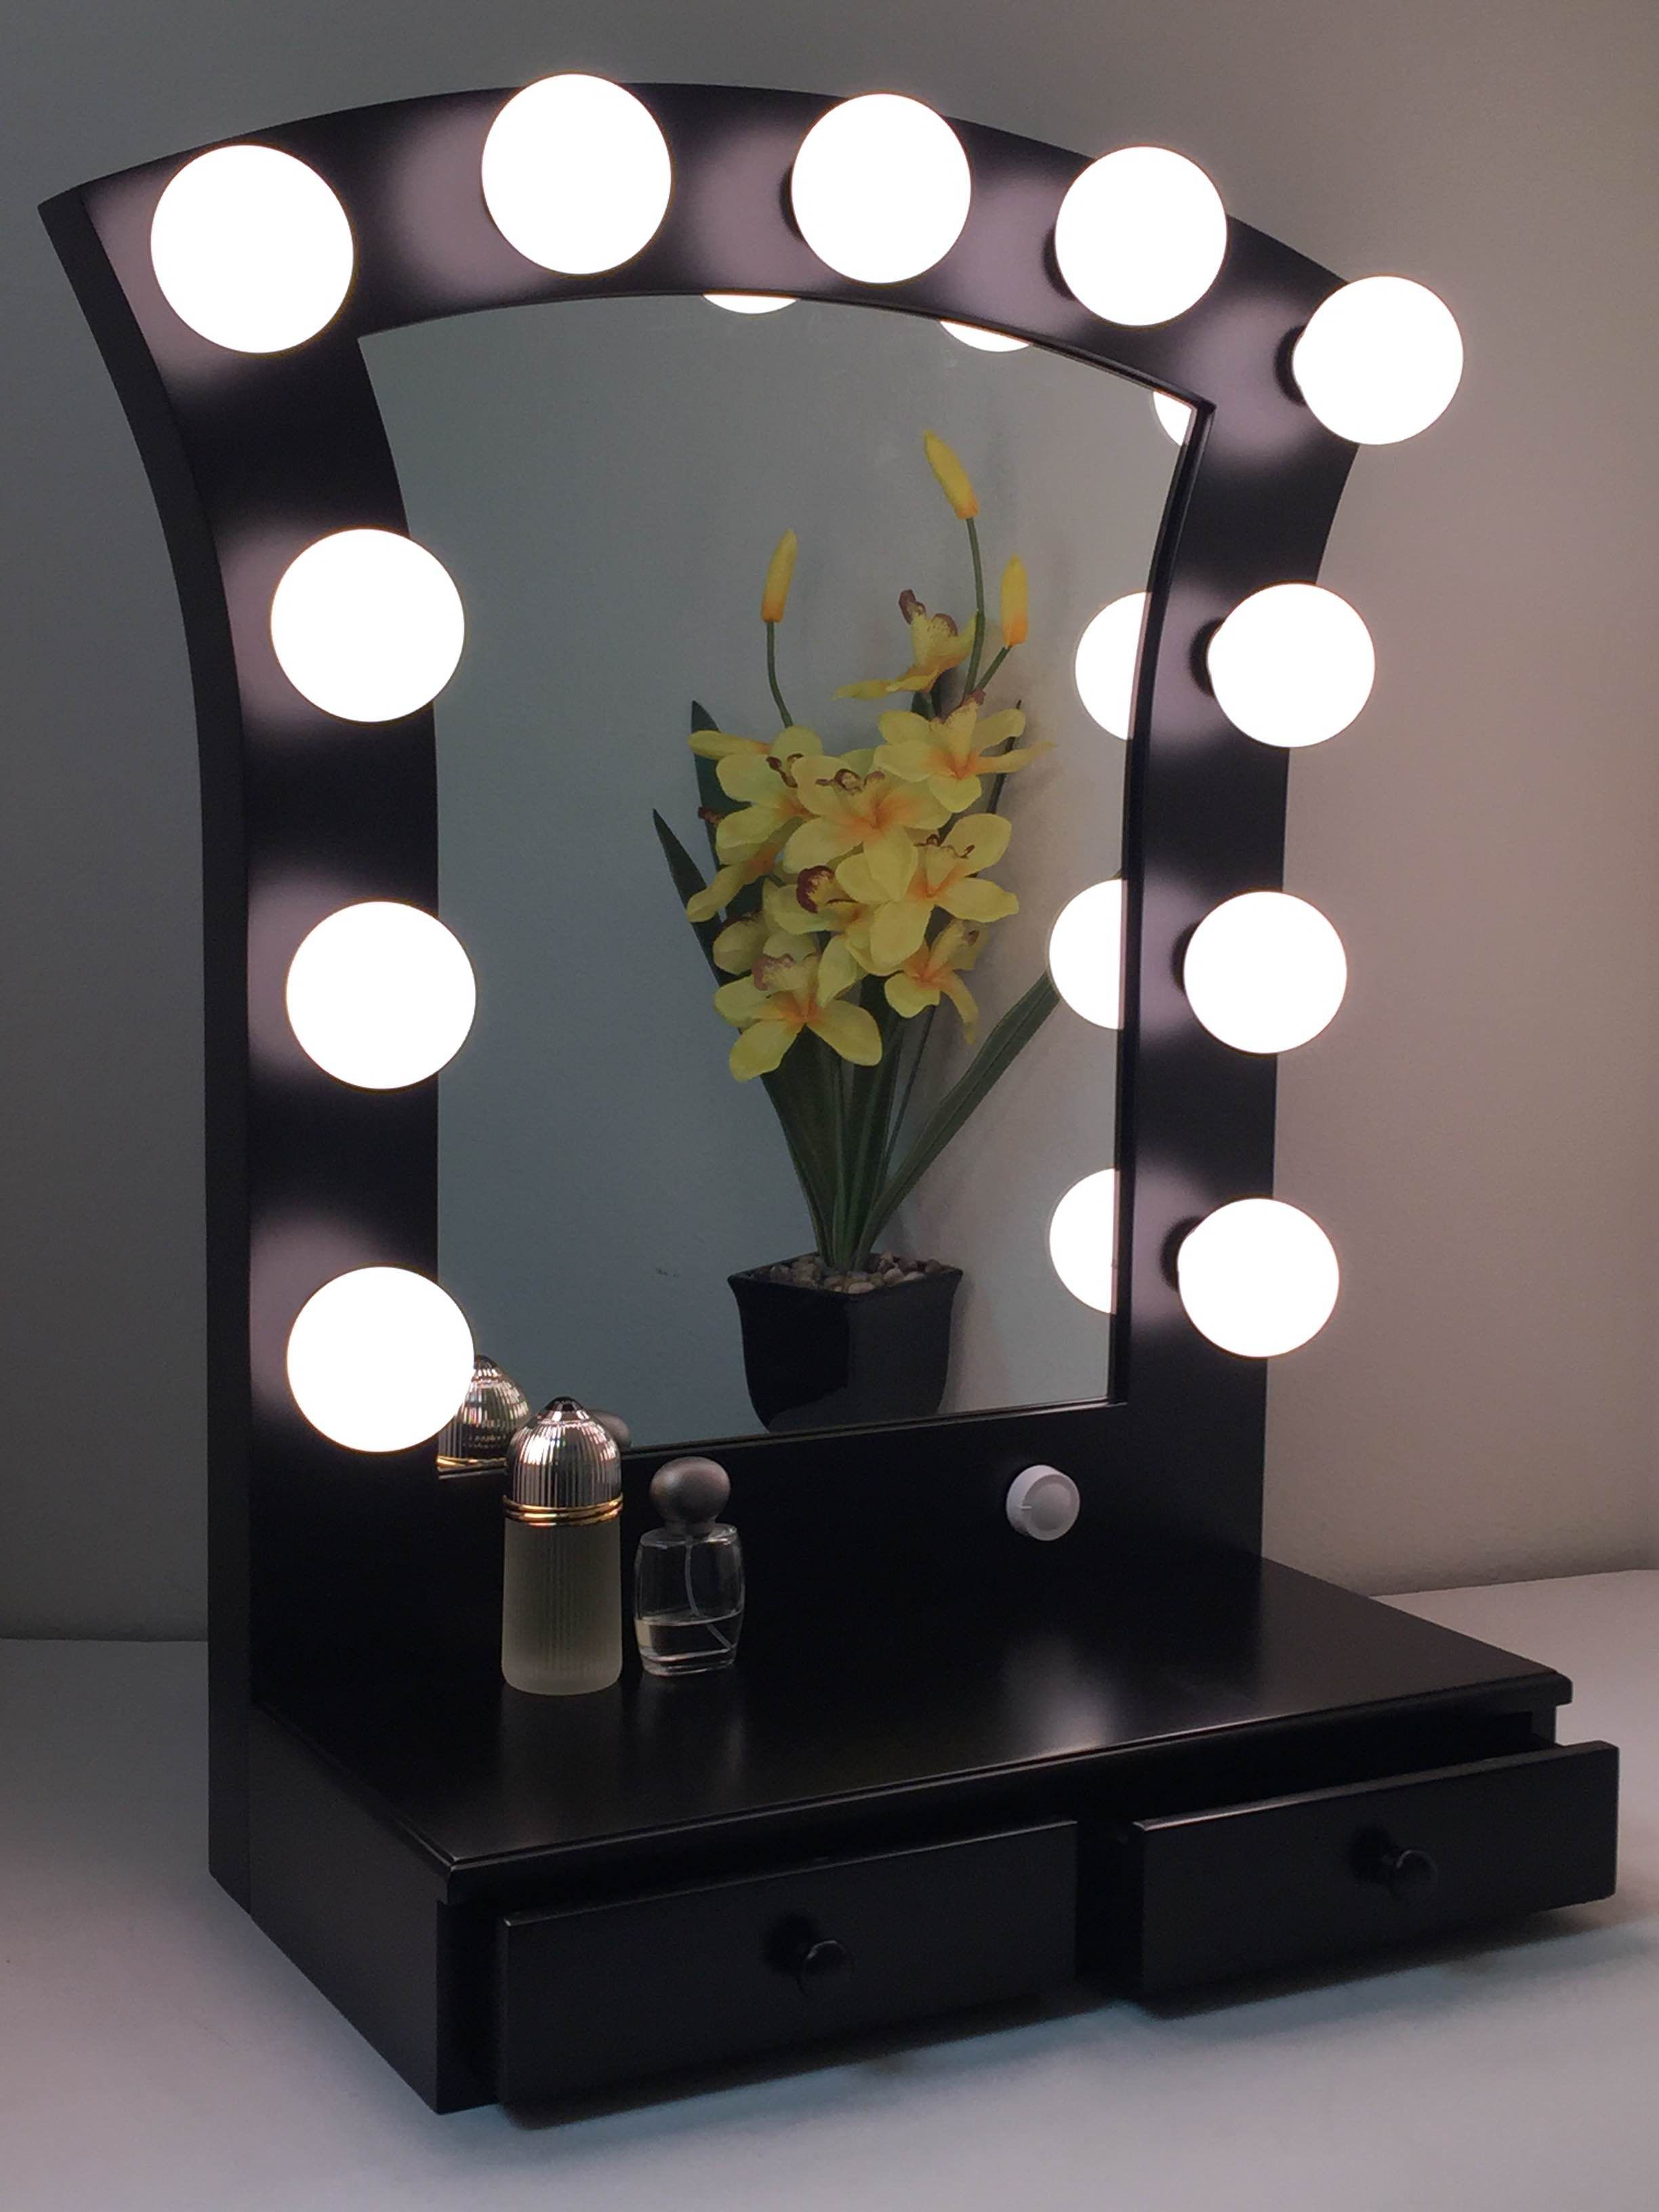 makeup ikea hollywood homemade have table from drawers bedroom plans luxury woodworking lights i as how lighted walmart diy small bathroom exquisite no cabinet free this in house with much and counters exciting mirror remarkable british dresser vanity to